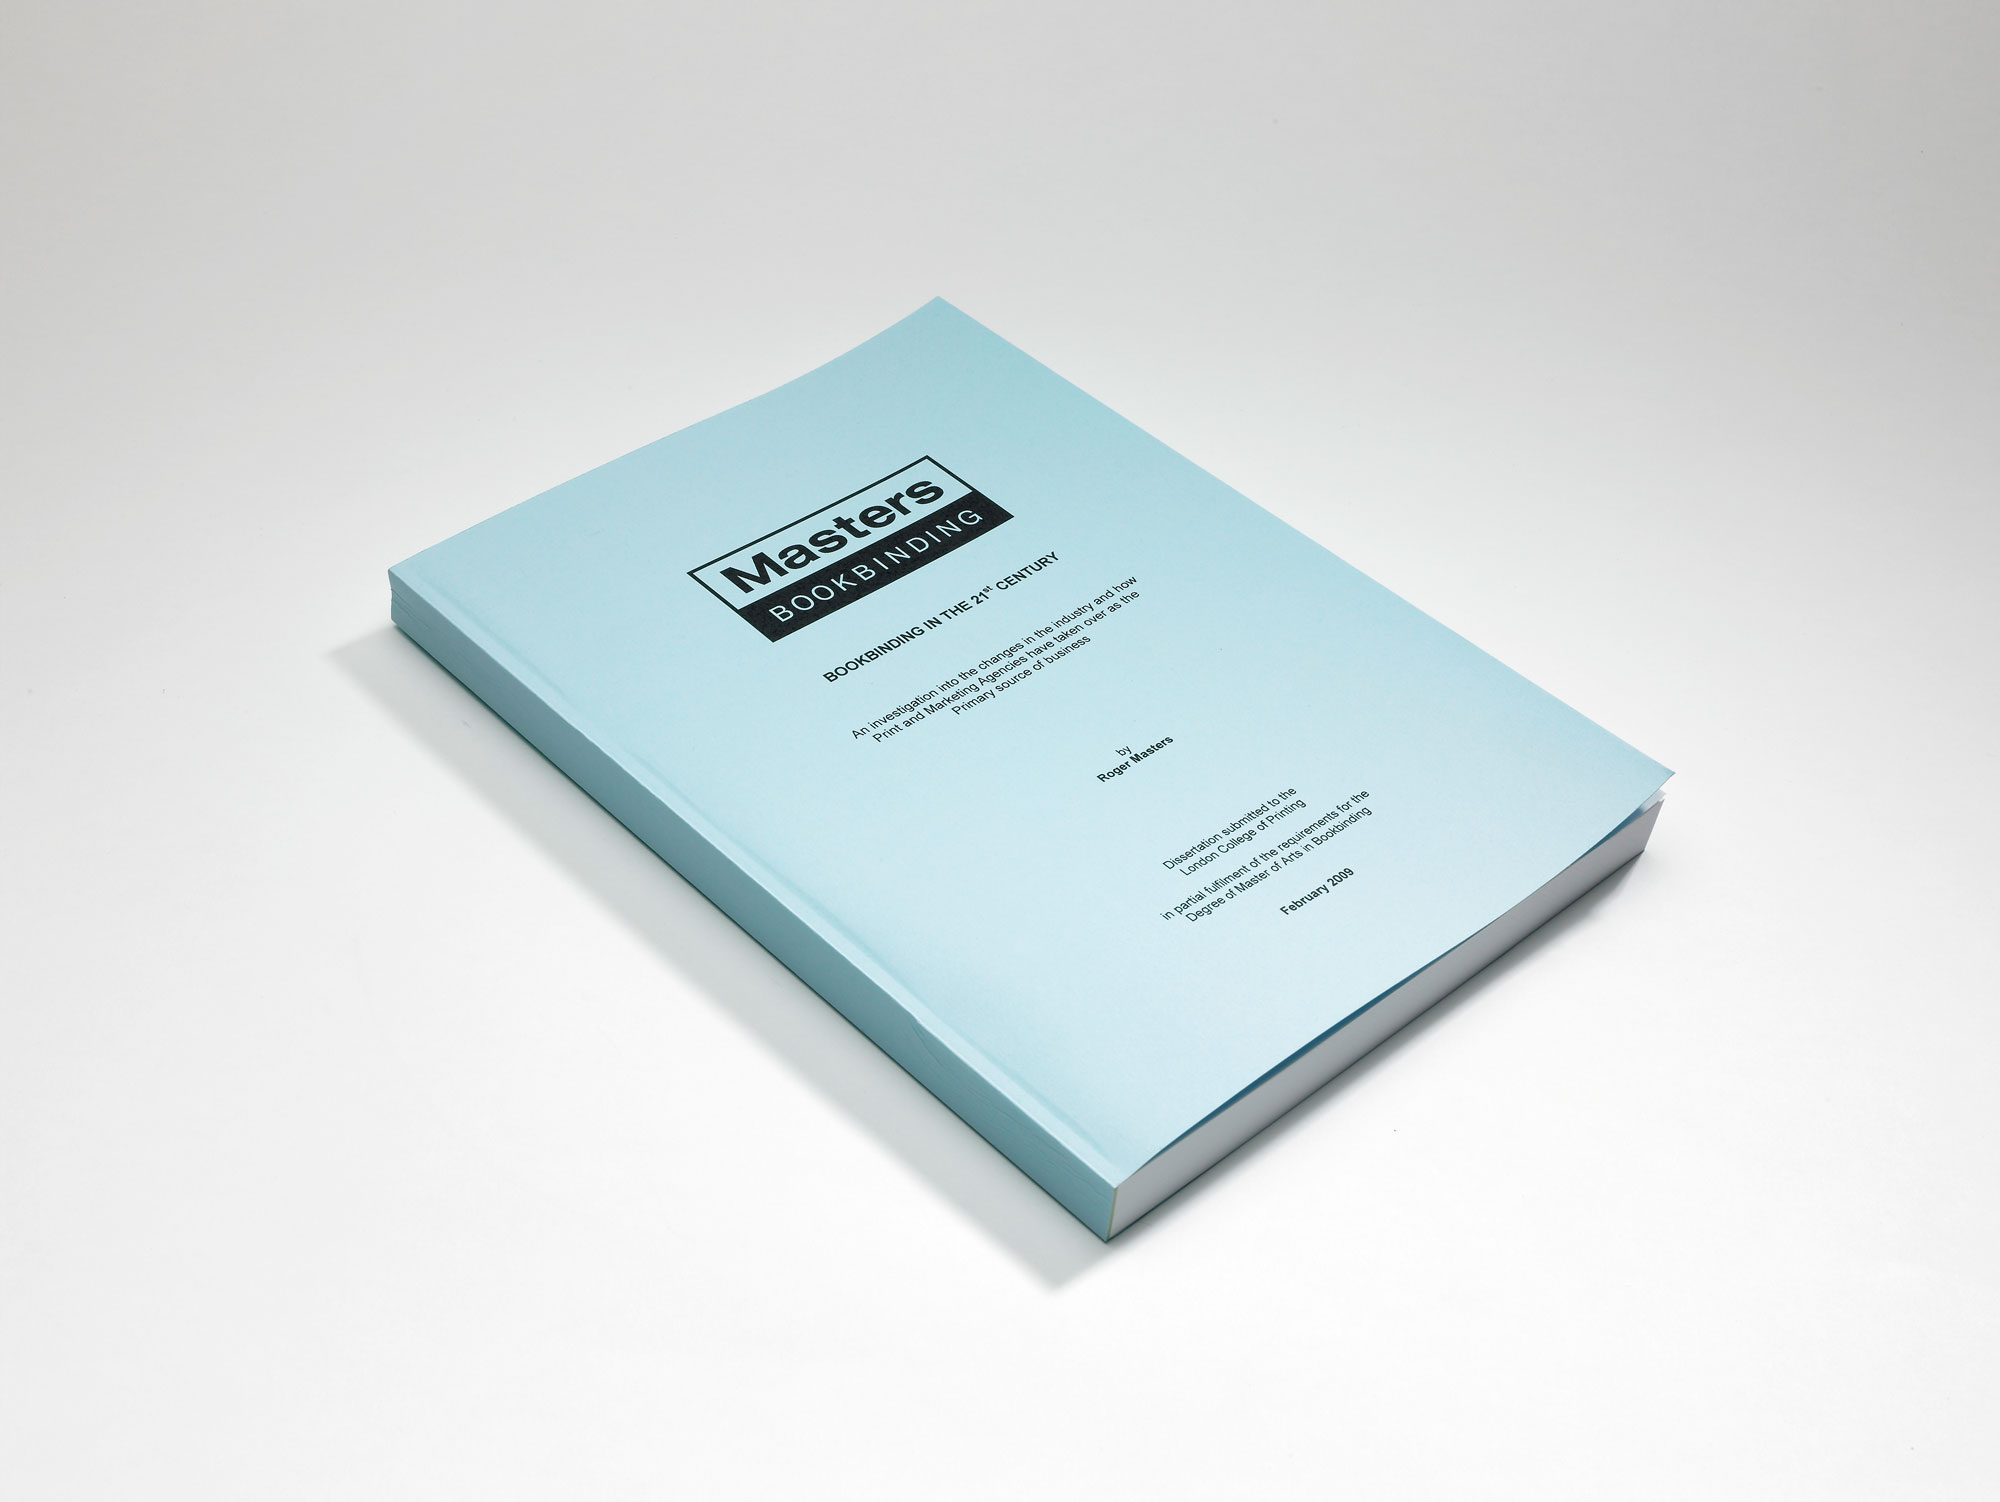 book binding essay We provide dissertation binding, thesis binding, bespoke bookbinding and a range of printing services for students in london and the uk.